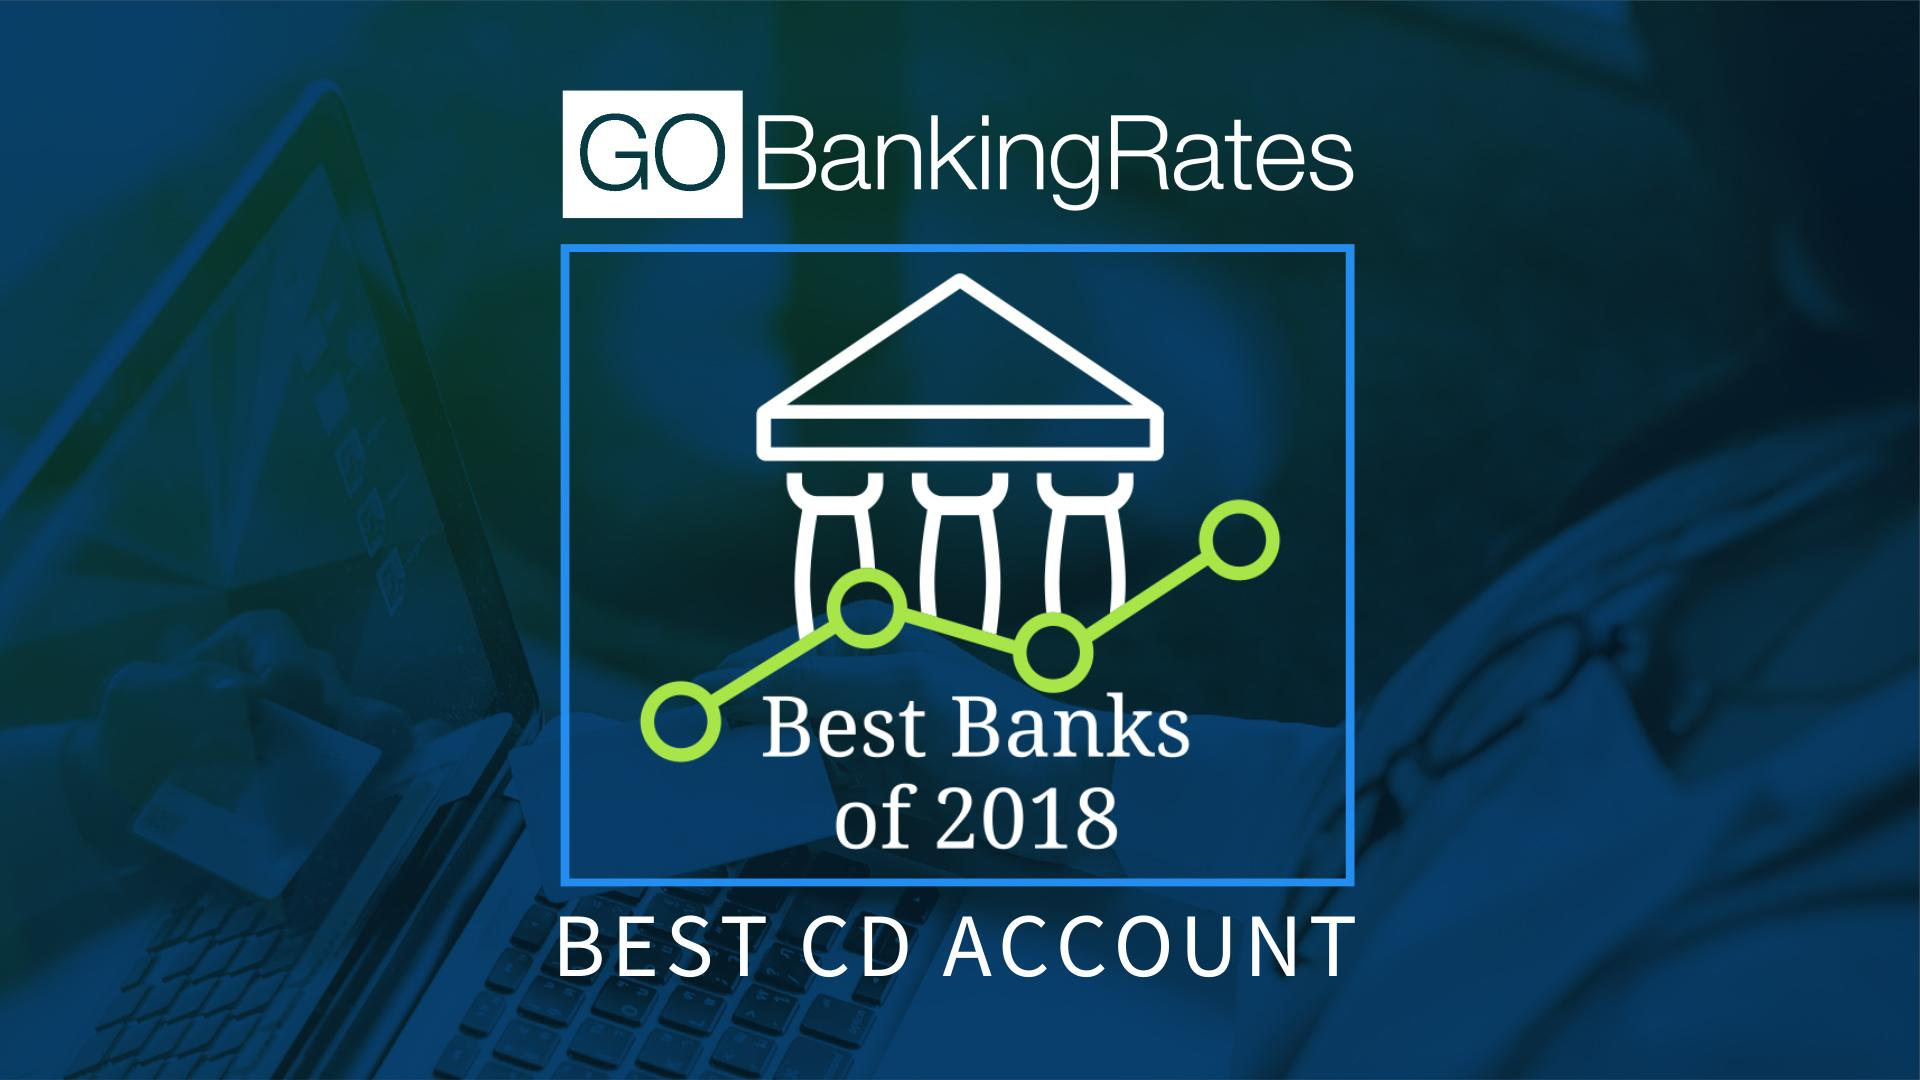 Best cd account of 2018 marcus by goldman sachs 1betcityfo Choice Image